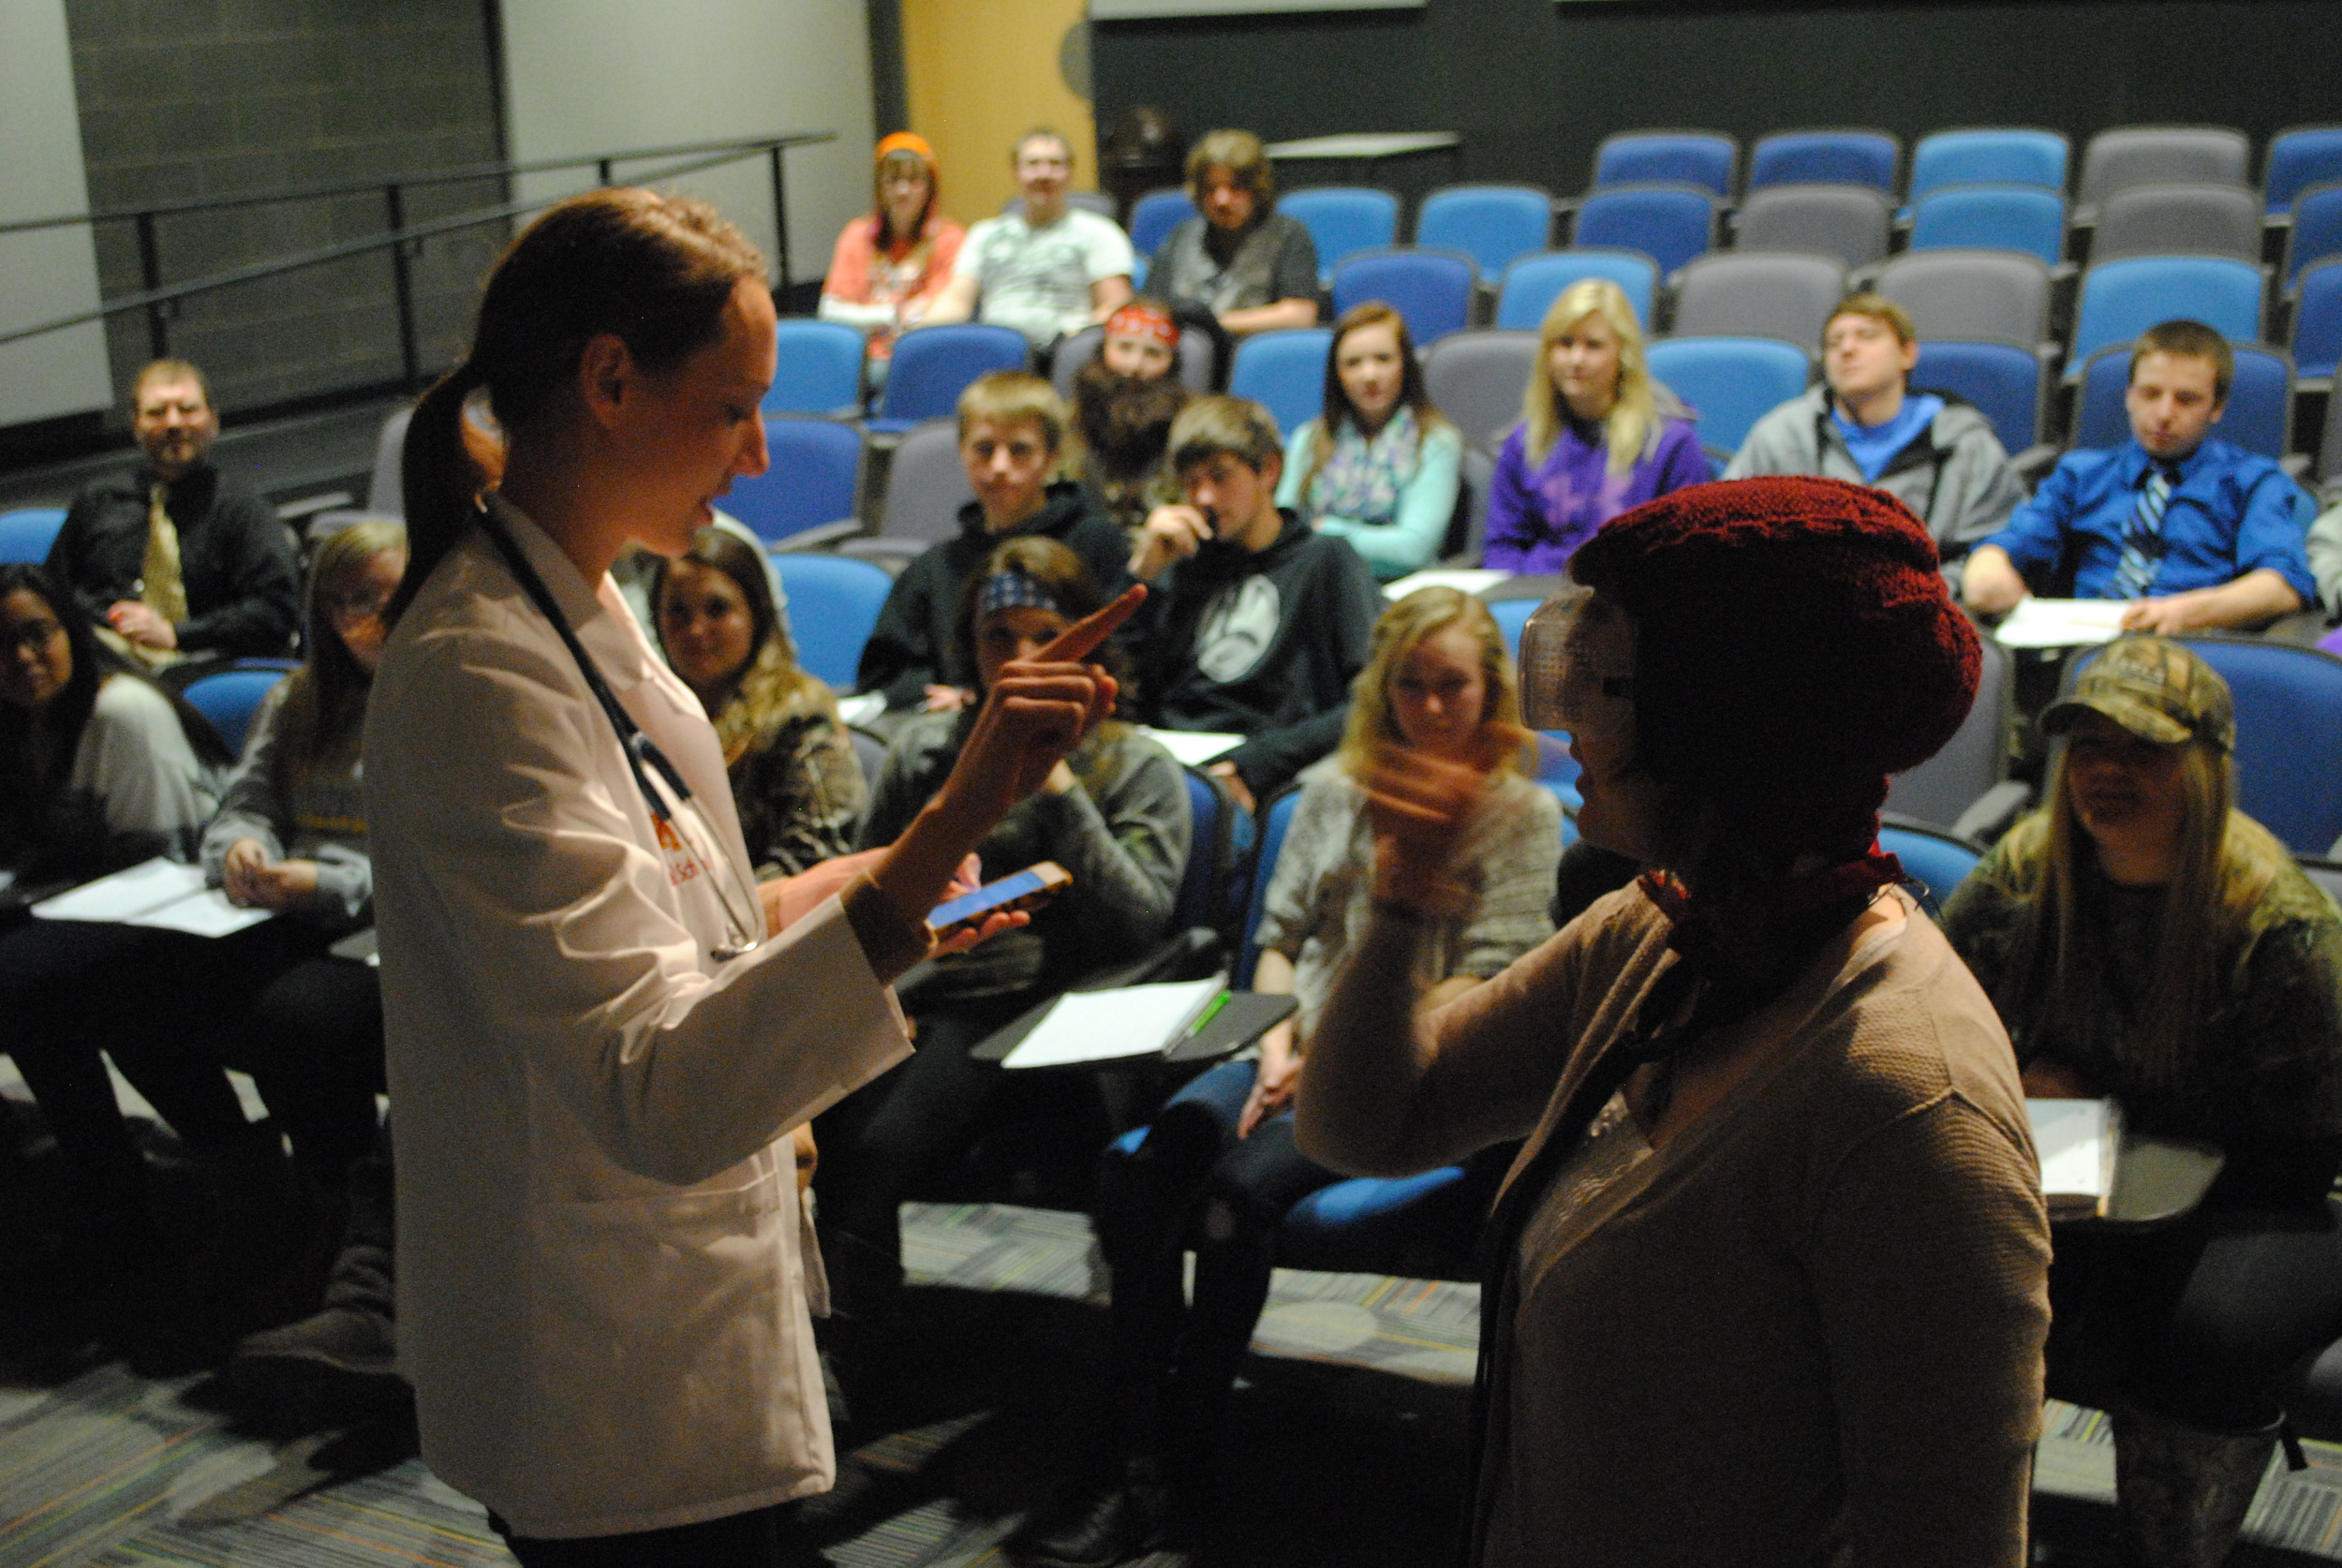 University of Minnesota-Duluth medical student Britta Knutson conducts a brain exercise with WDC student Katelyn Windels Tuesday in Robby Grendahl's psychology class. (Photos by Dana Pavek, WDC Schools)